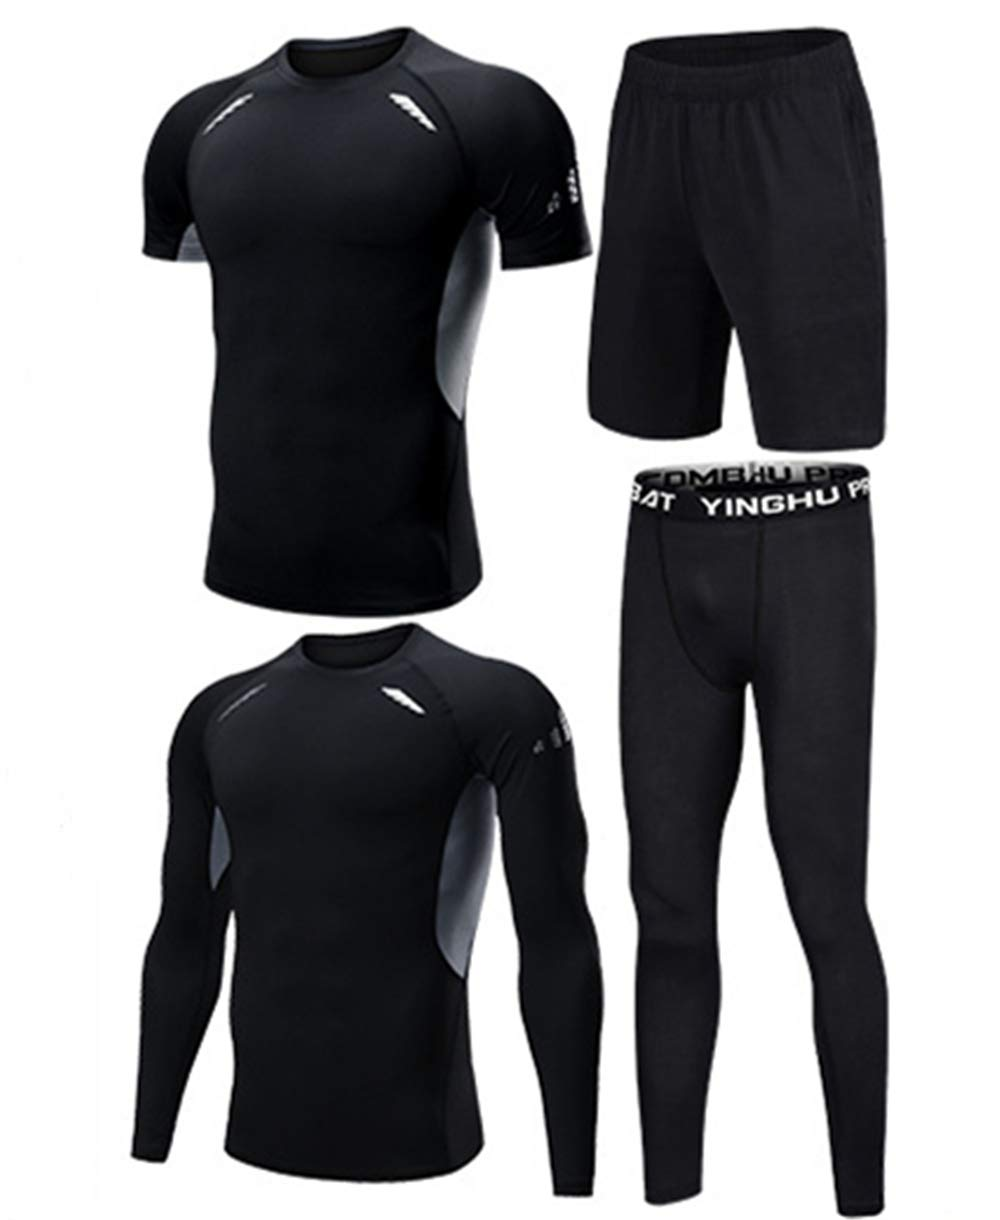 WYQQ Summer Man's Suit Sportswear Four-Piece Fitness Quick-Drying Training Tights(Black-Gray,S)